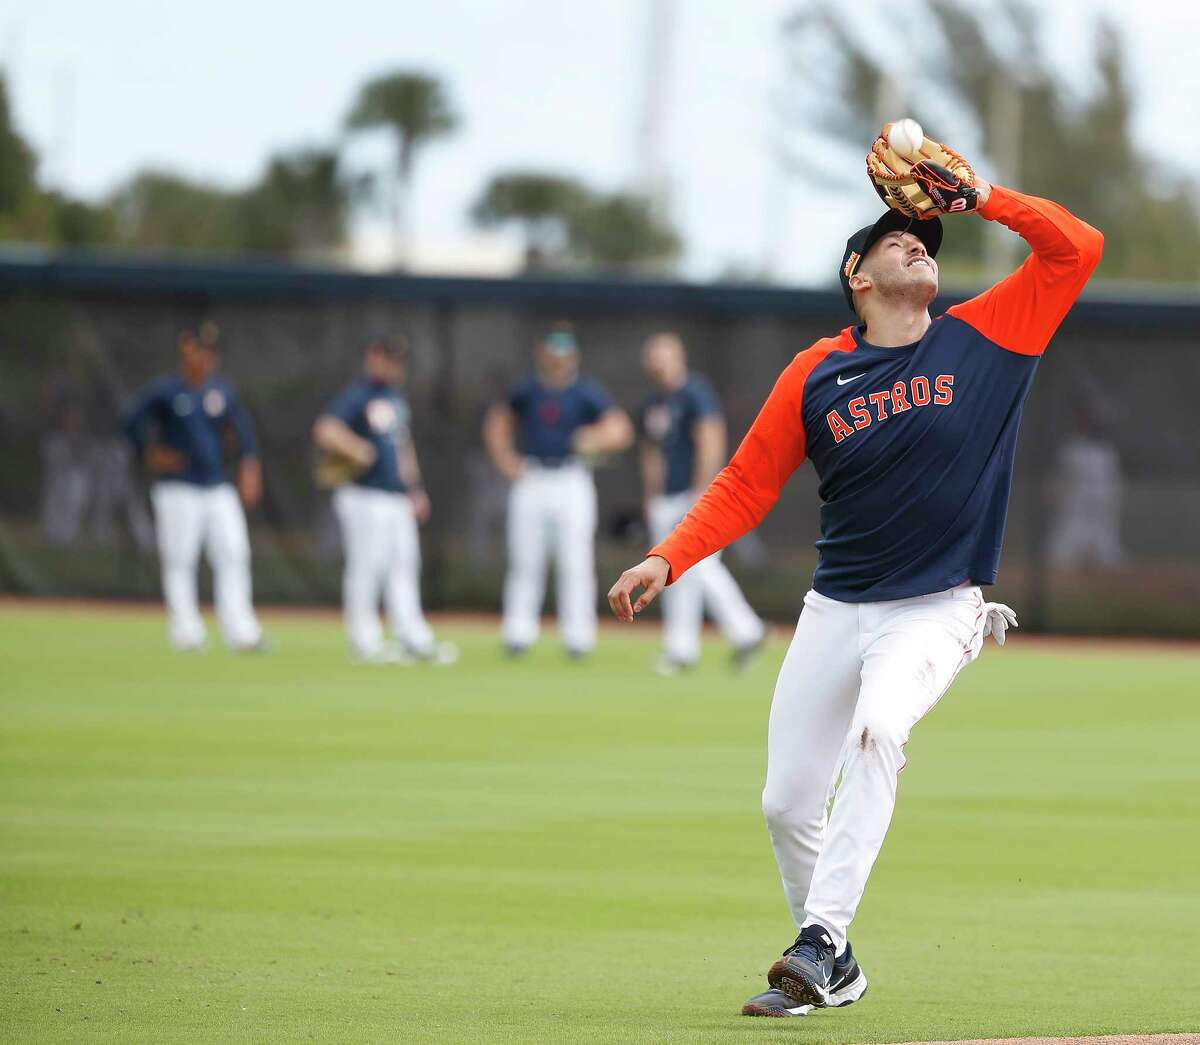 Astros shortstop Carlos Correa got to work at spring training Monday and also discussed his looming free agency afterward.